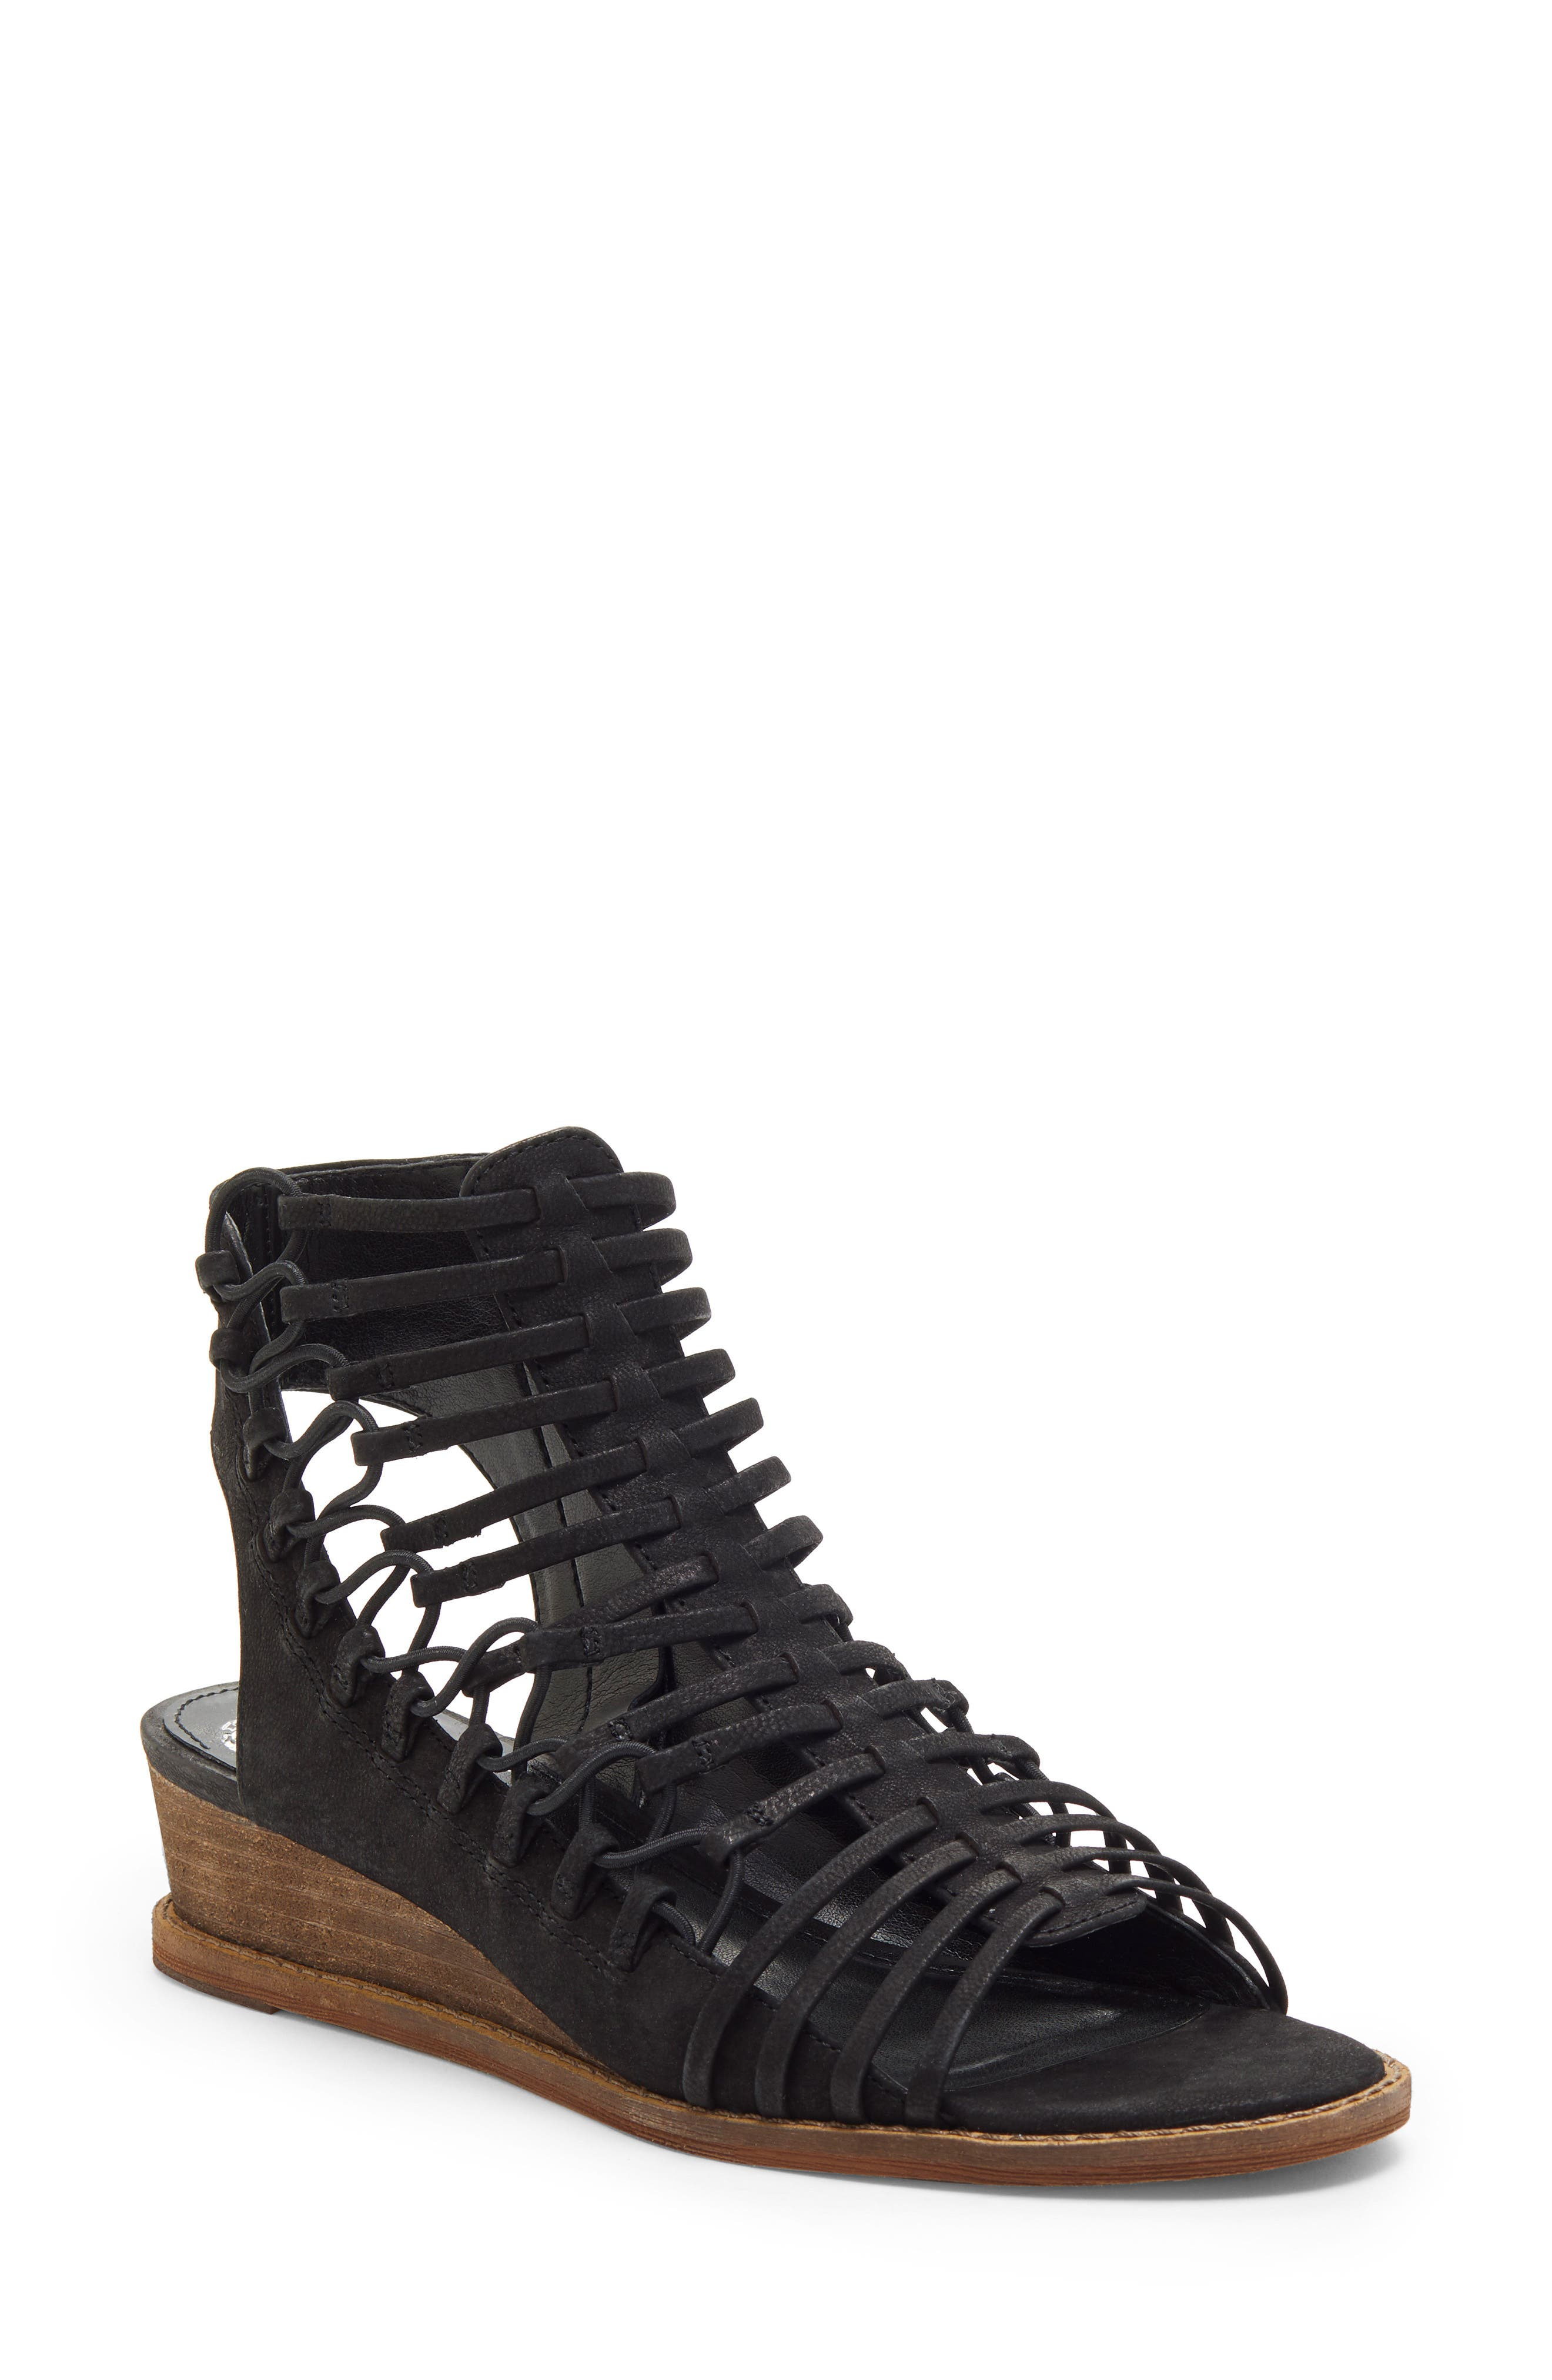 Vince Camuto Slippers Romera Gladiator Sandal